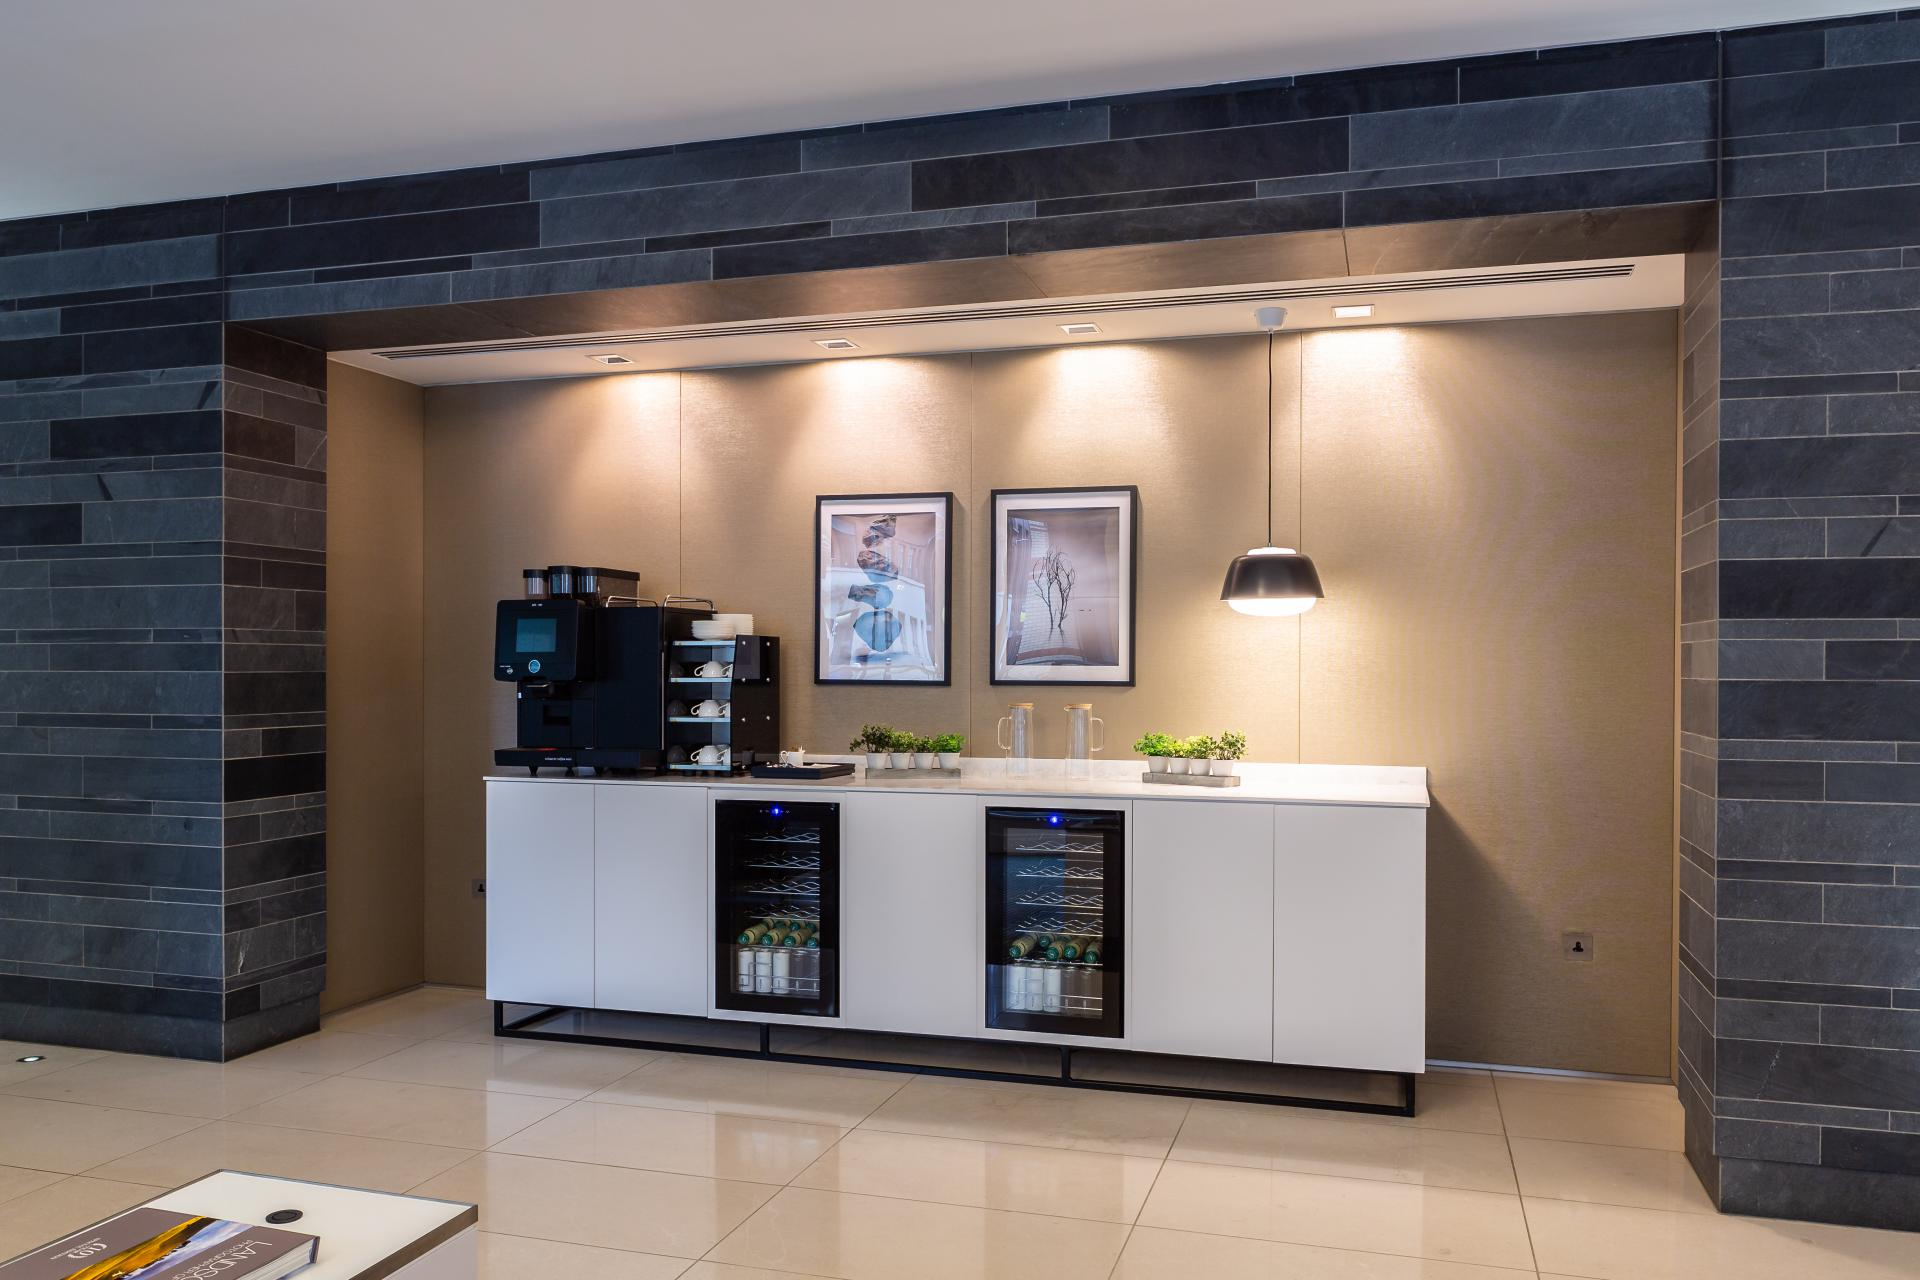 New tea point installed in London offices reception area -Liane Ryan Photography - Interior and Architectural Photographer in London and Essex